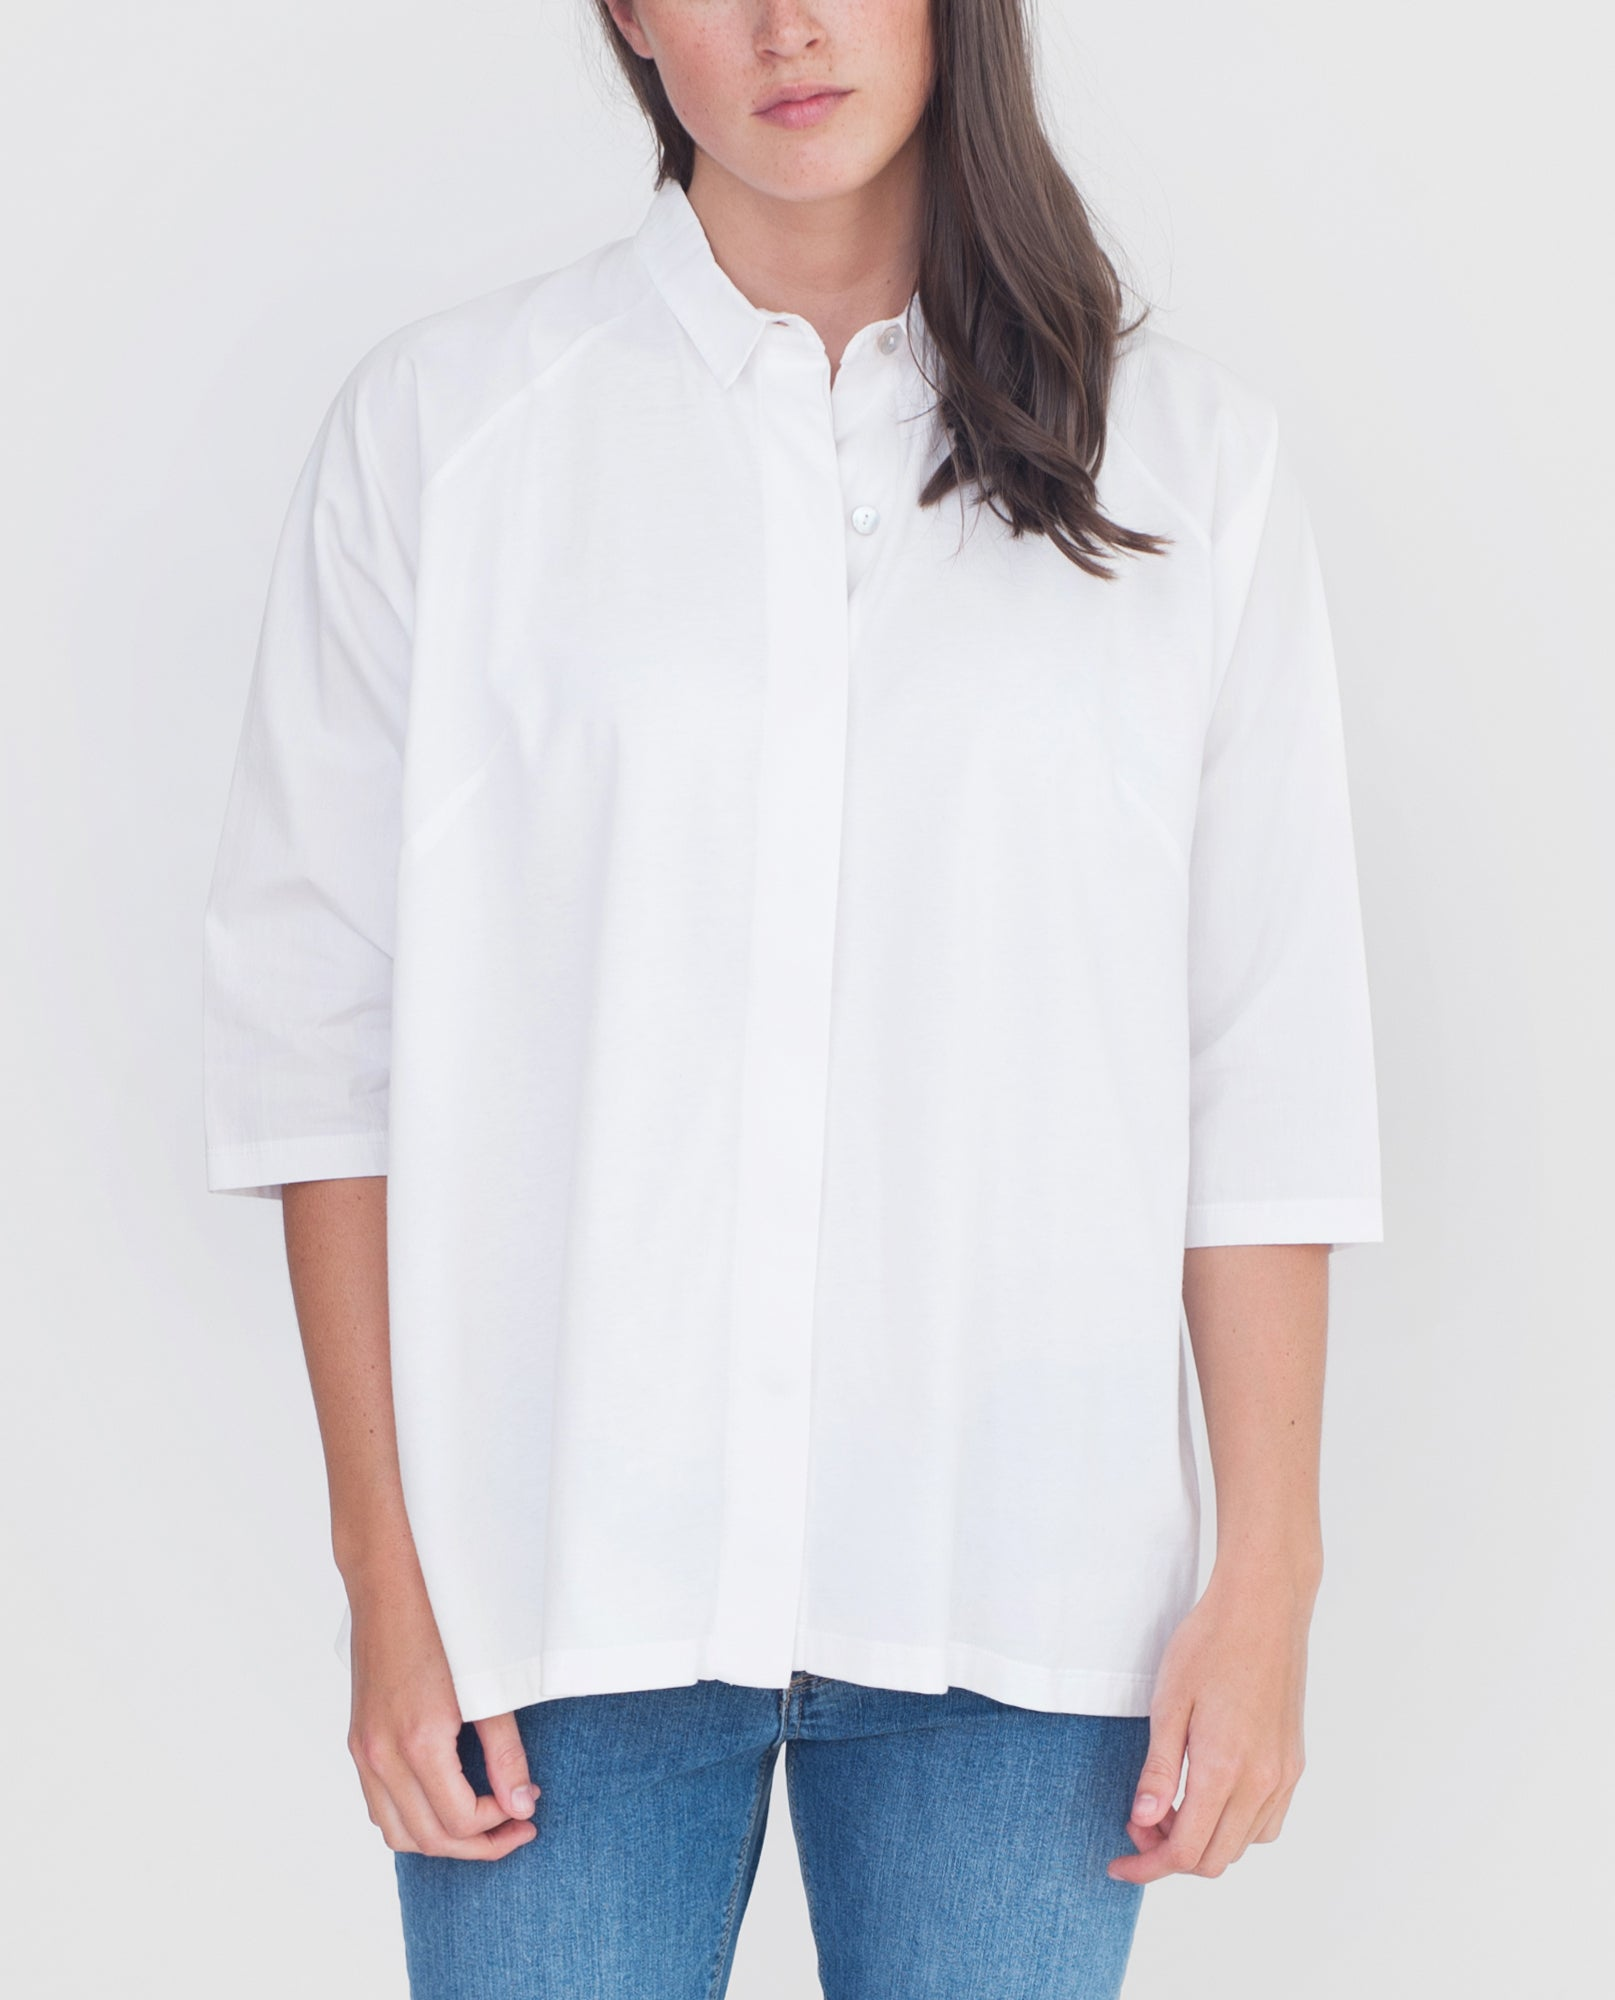 TERRY Organic Cotton Shirt In White from Beaumont Organic